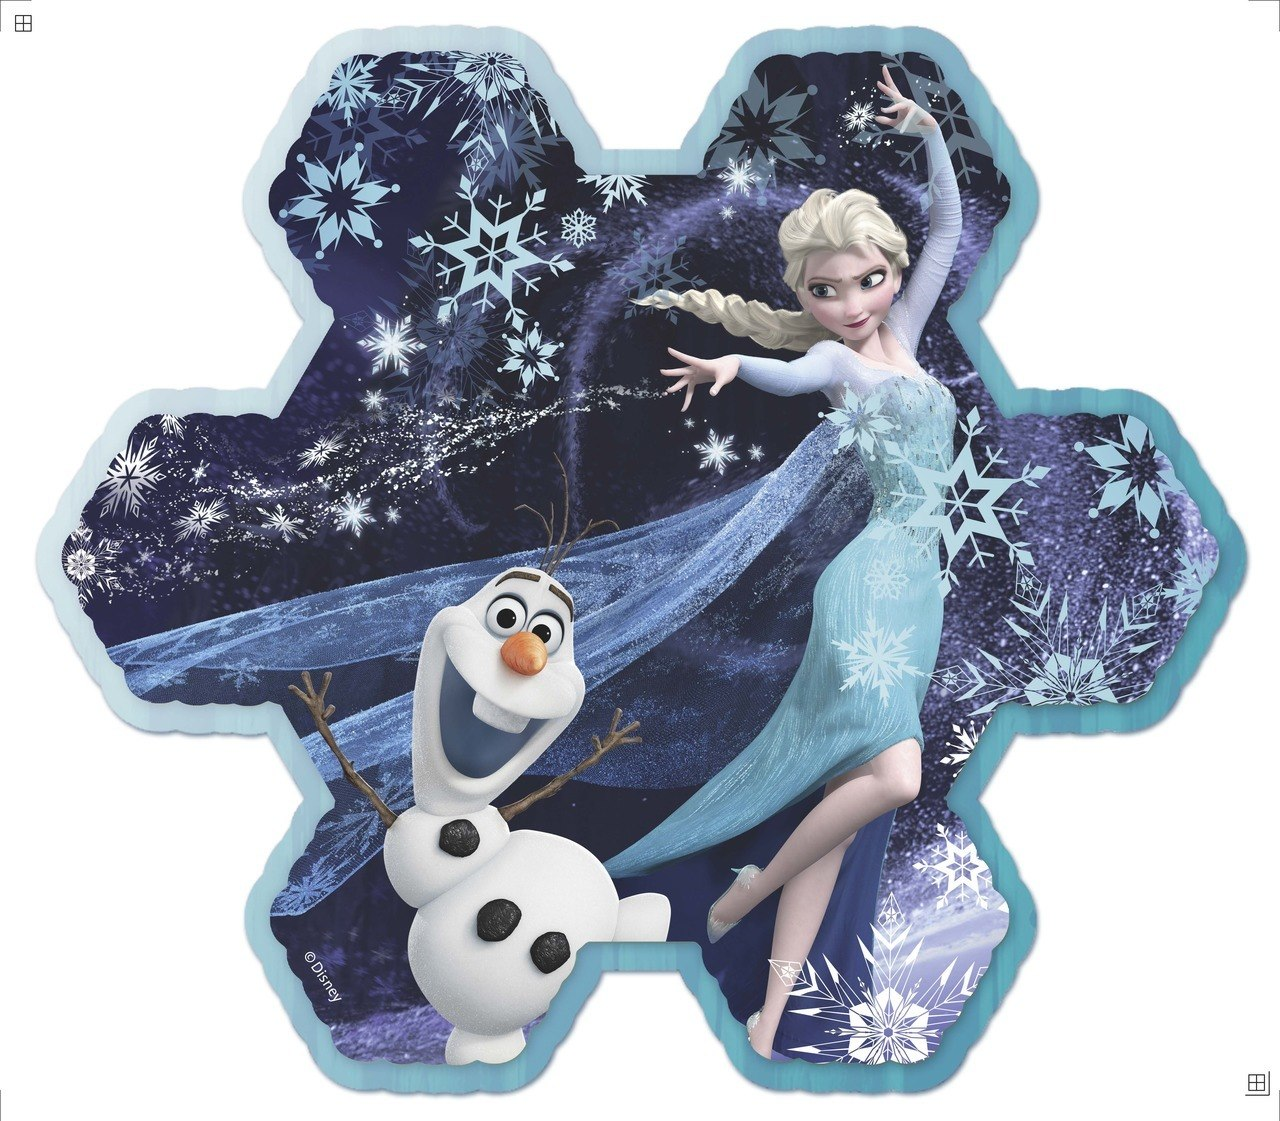 Frozen: Elsa's Snowflake - 100pc Shaped Glitter Puzzle by Ravensburger